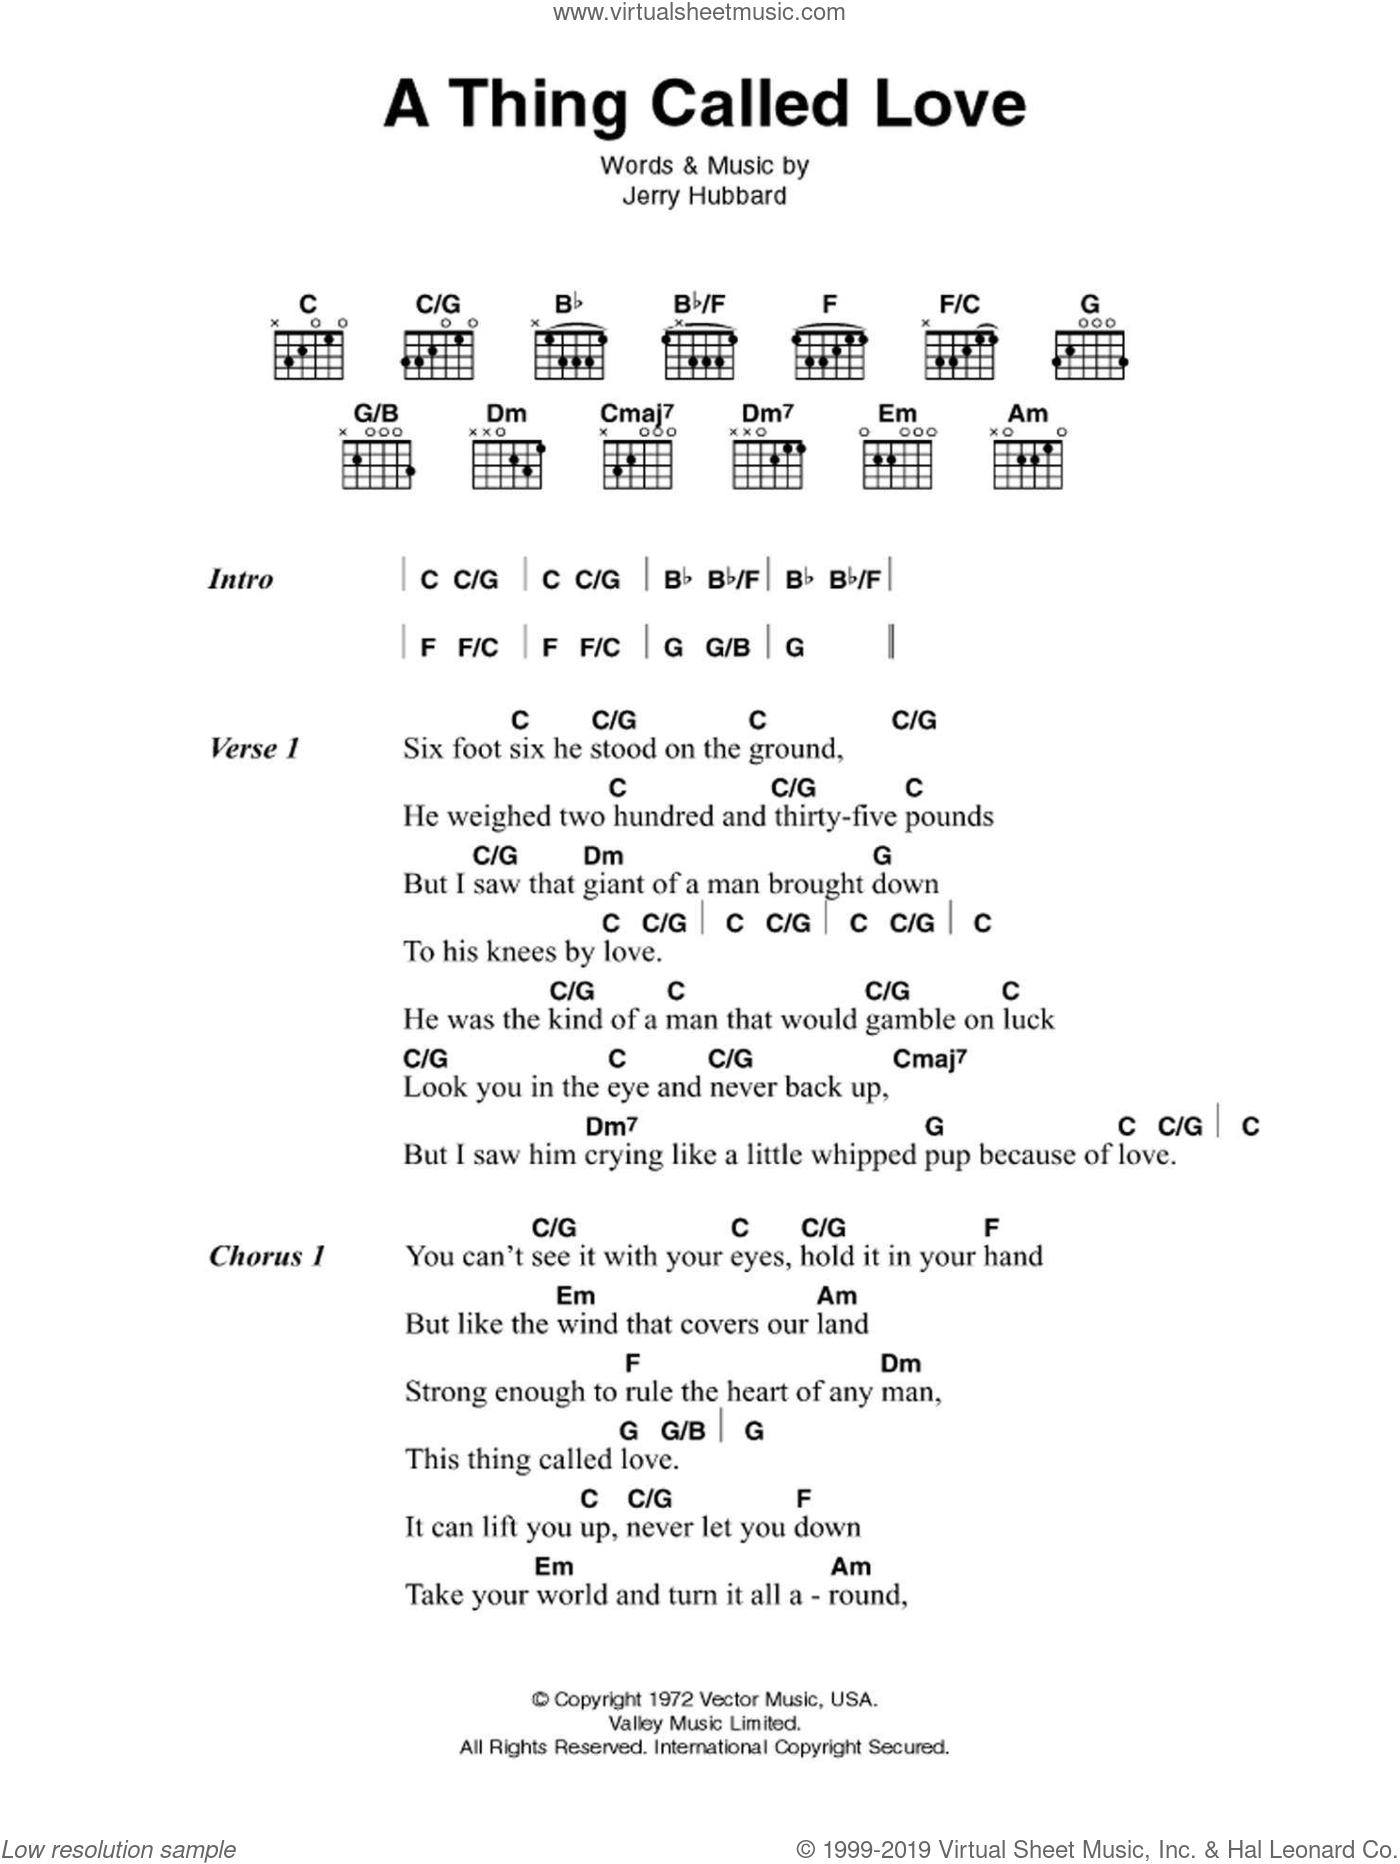 Cash - A Thing Called Love sheet music for guitar (chords) [PDF]